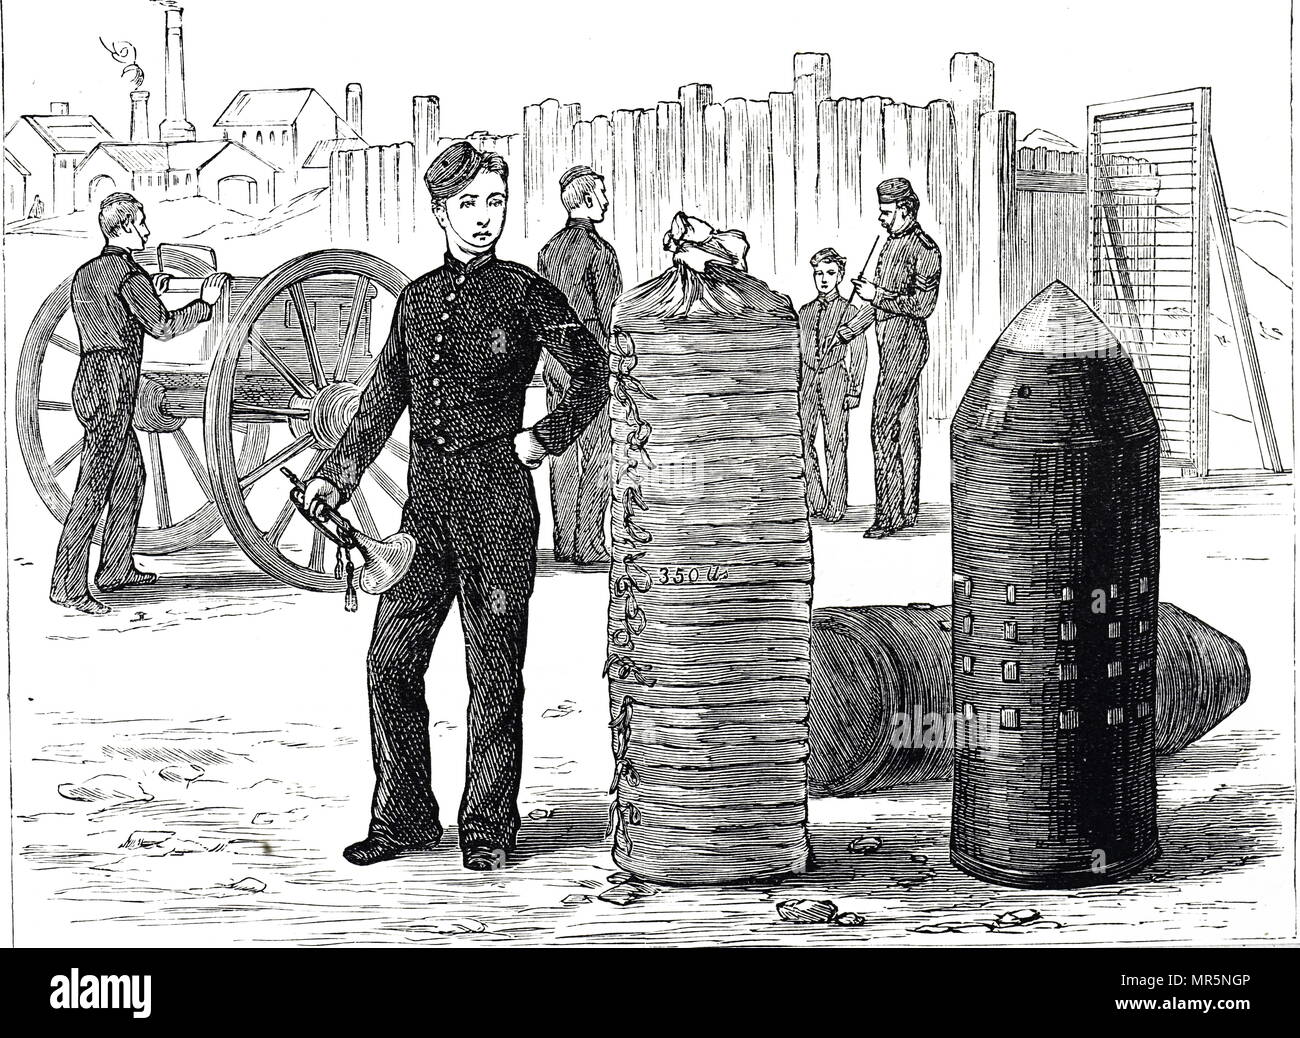 Engraving depicting a shell for an 80-ton gun. Dated 19th century - Stock Image